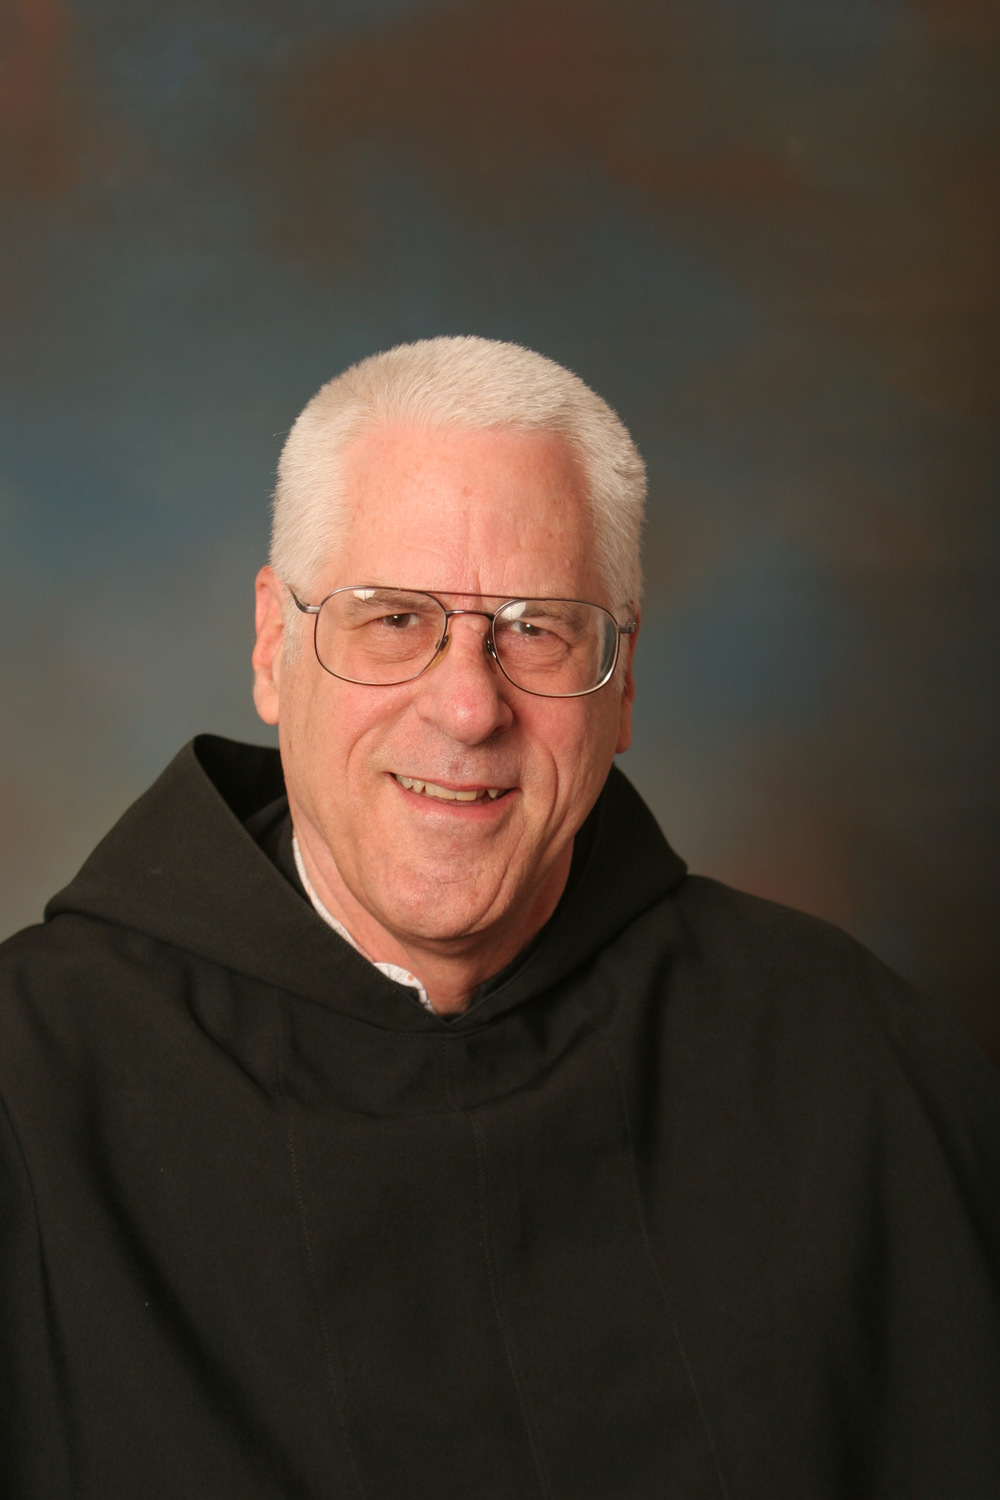 Brother Tom Taylor, O.S.A., has served as the Province Secretary for the past 15 years